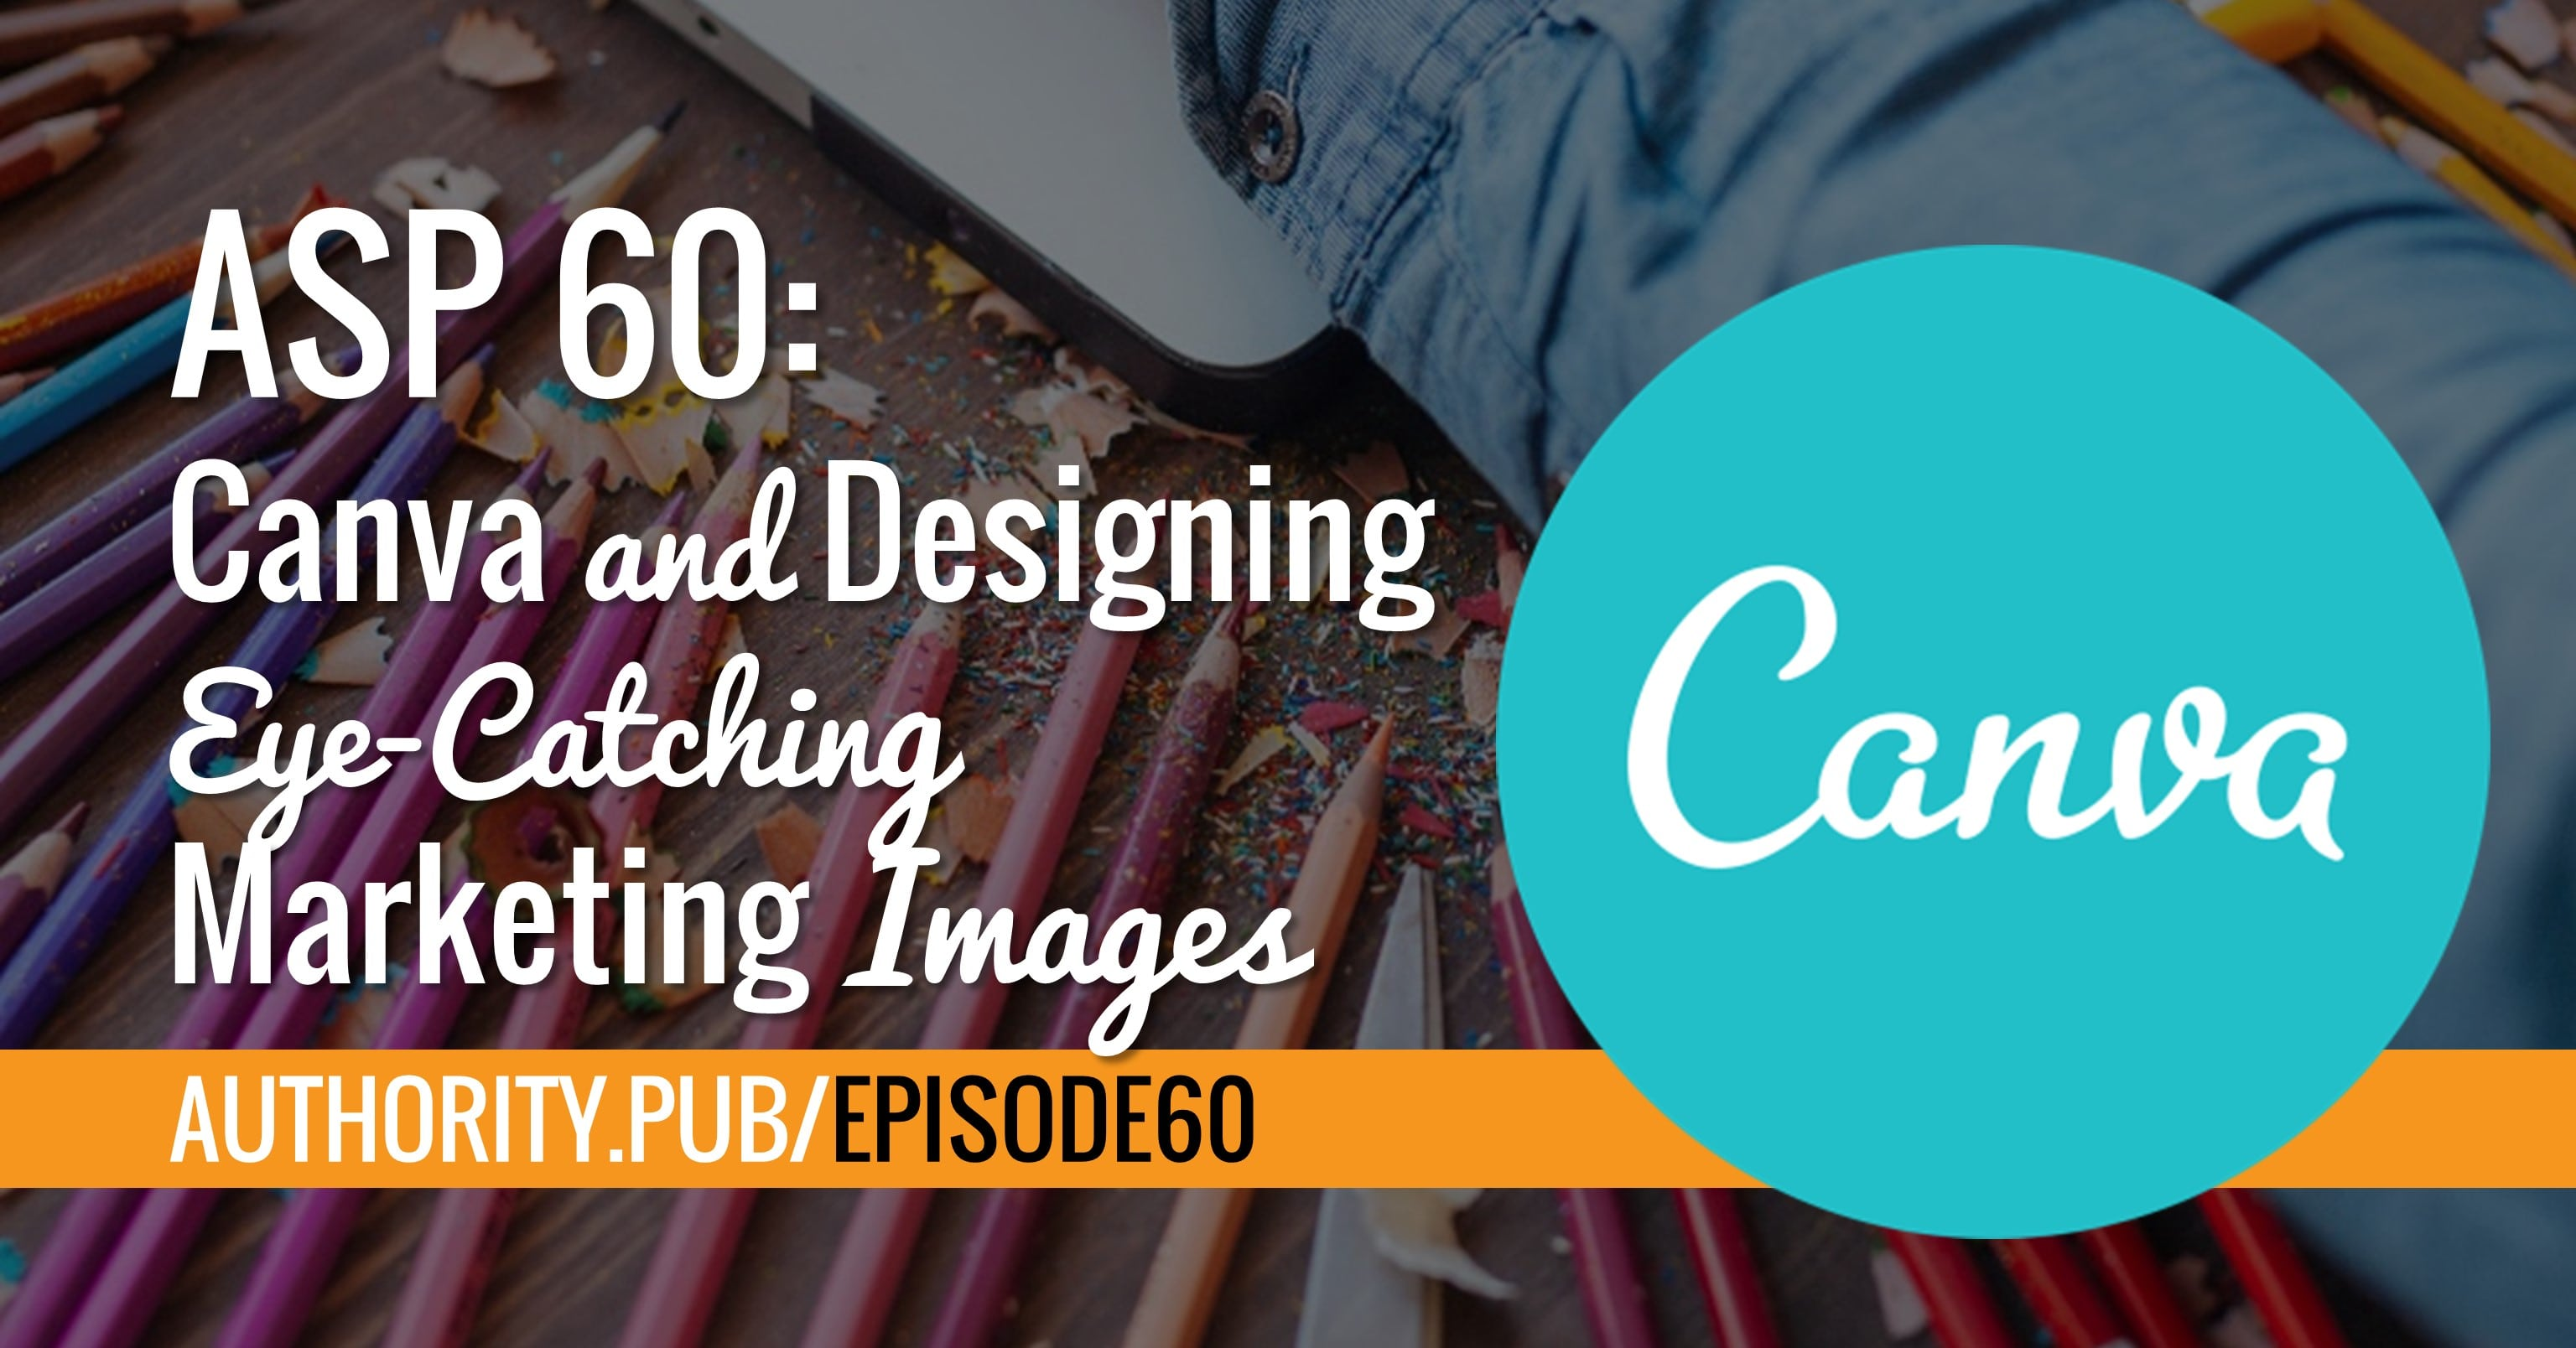 Learn how to use Canva.com to create eye-catching images and other design projects without needing to spend a ton of money.